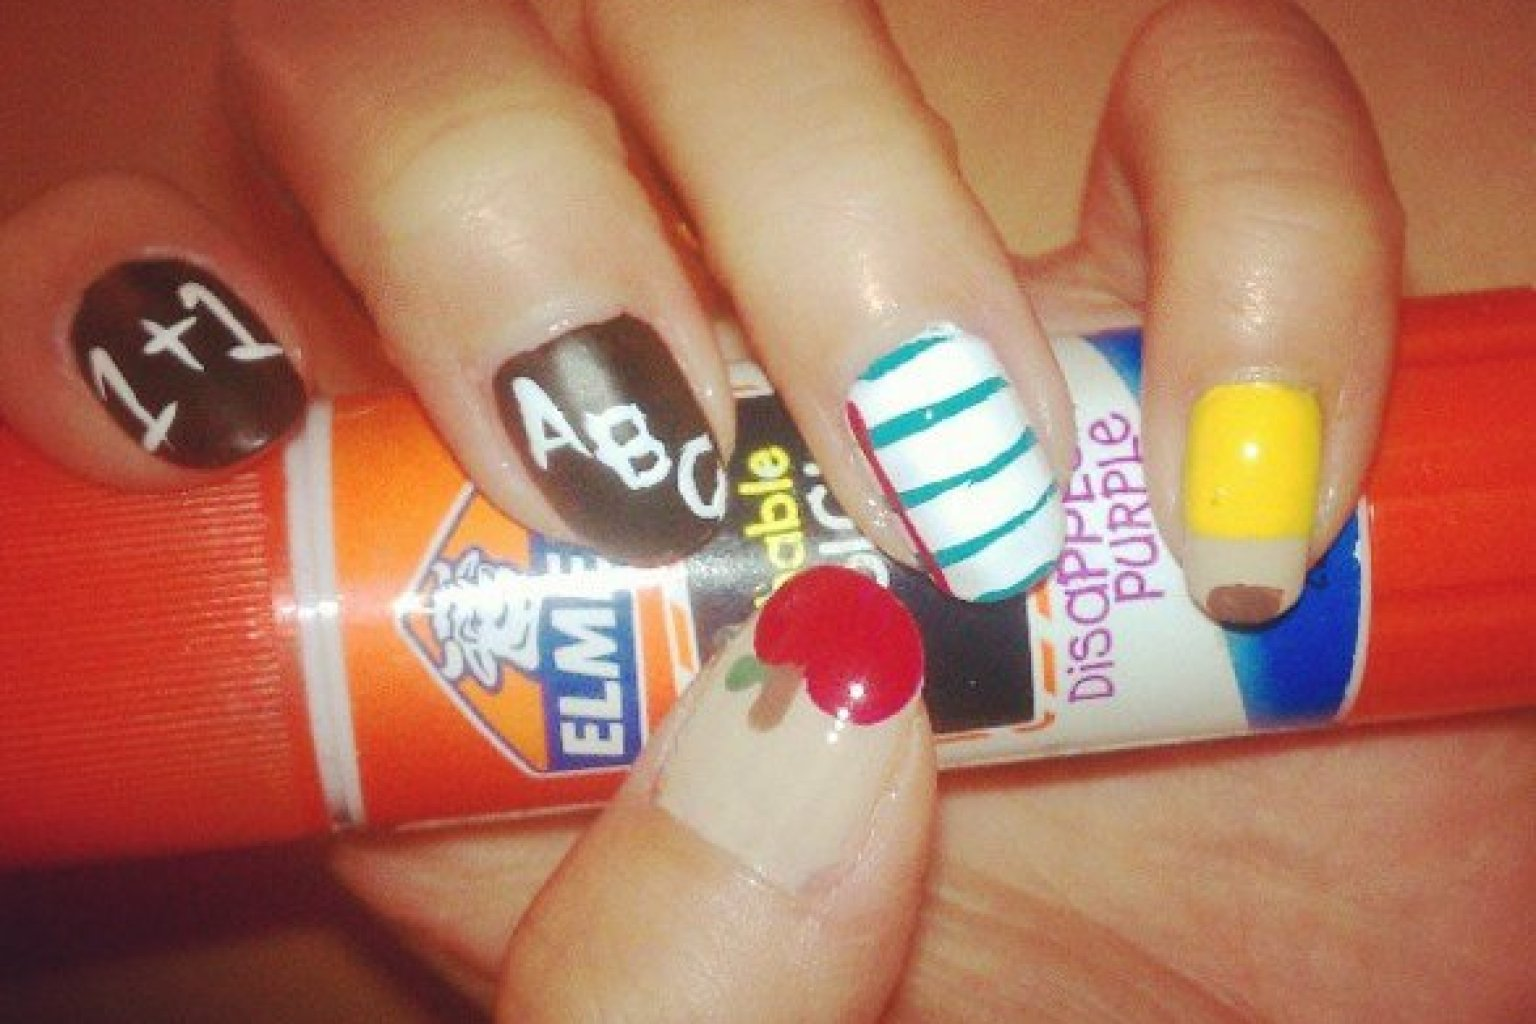 Back To School Nails La Dodgers Nail Art And More Insram Manicures Photos Huffpost